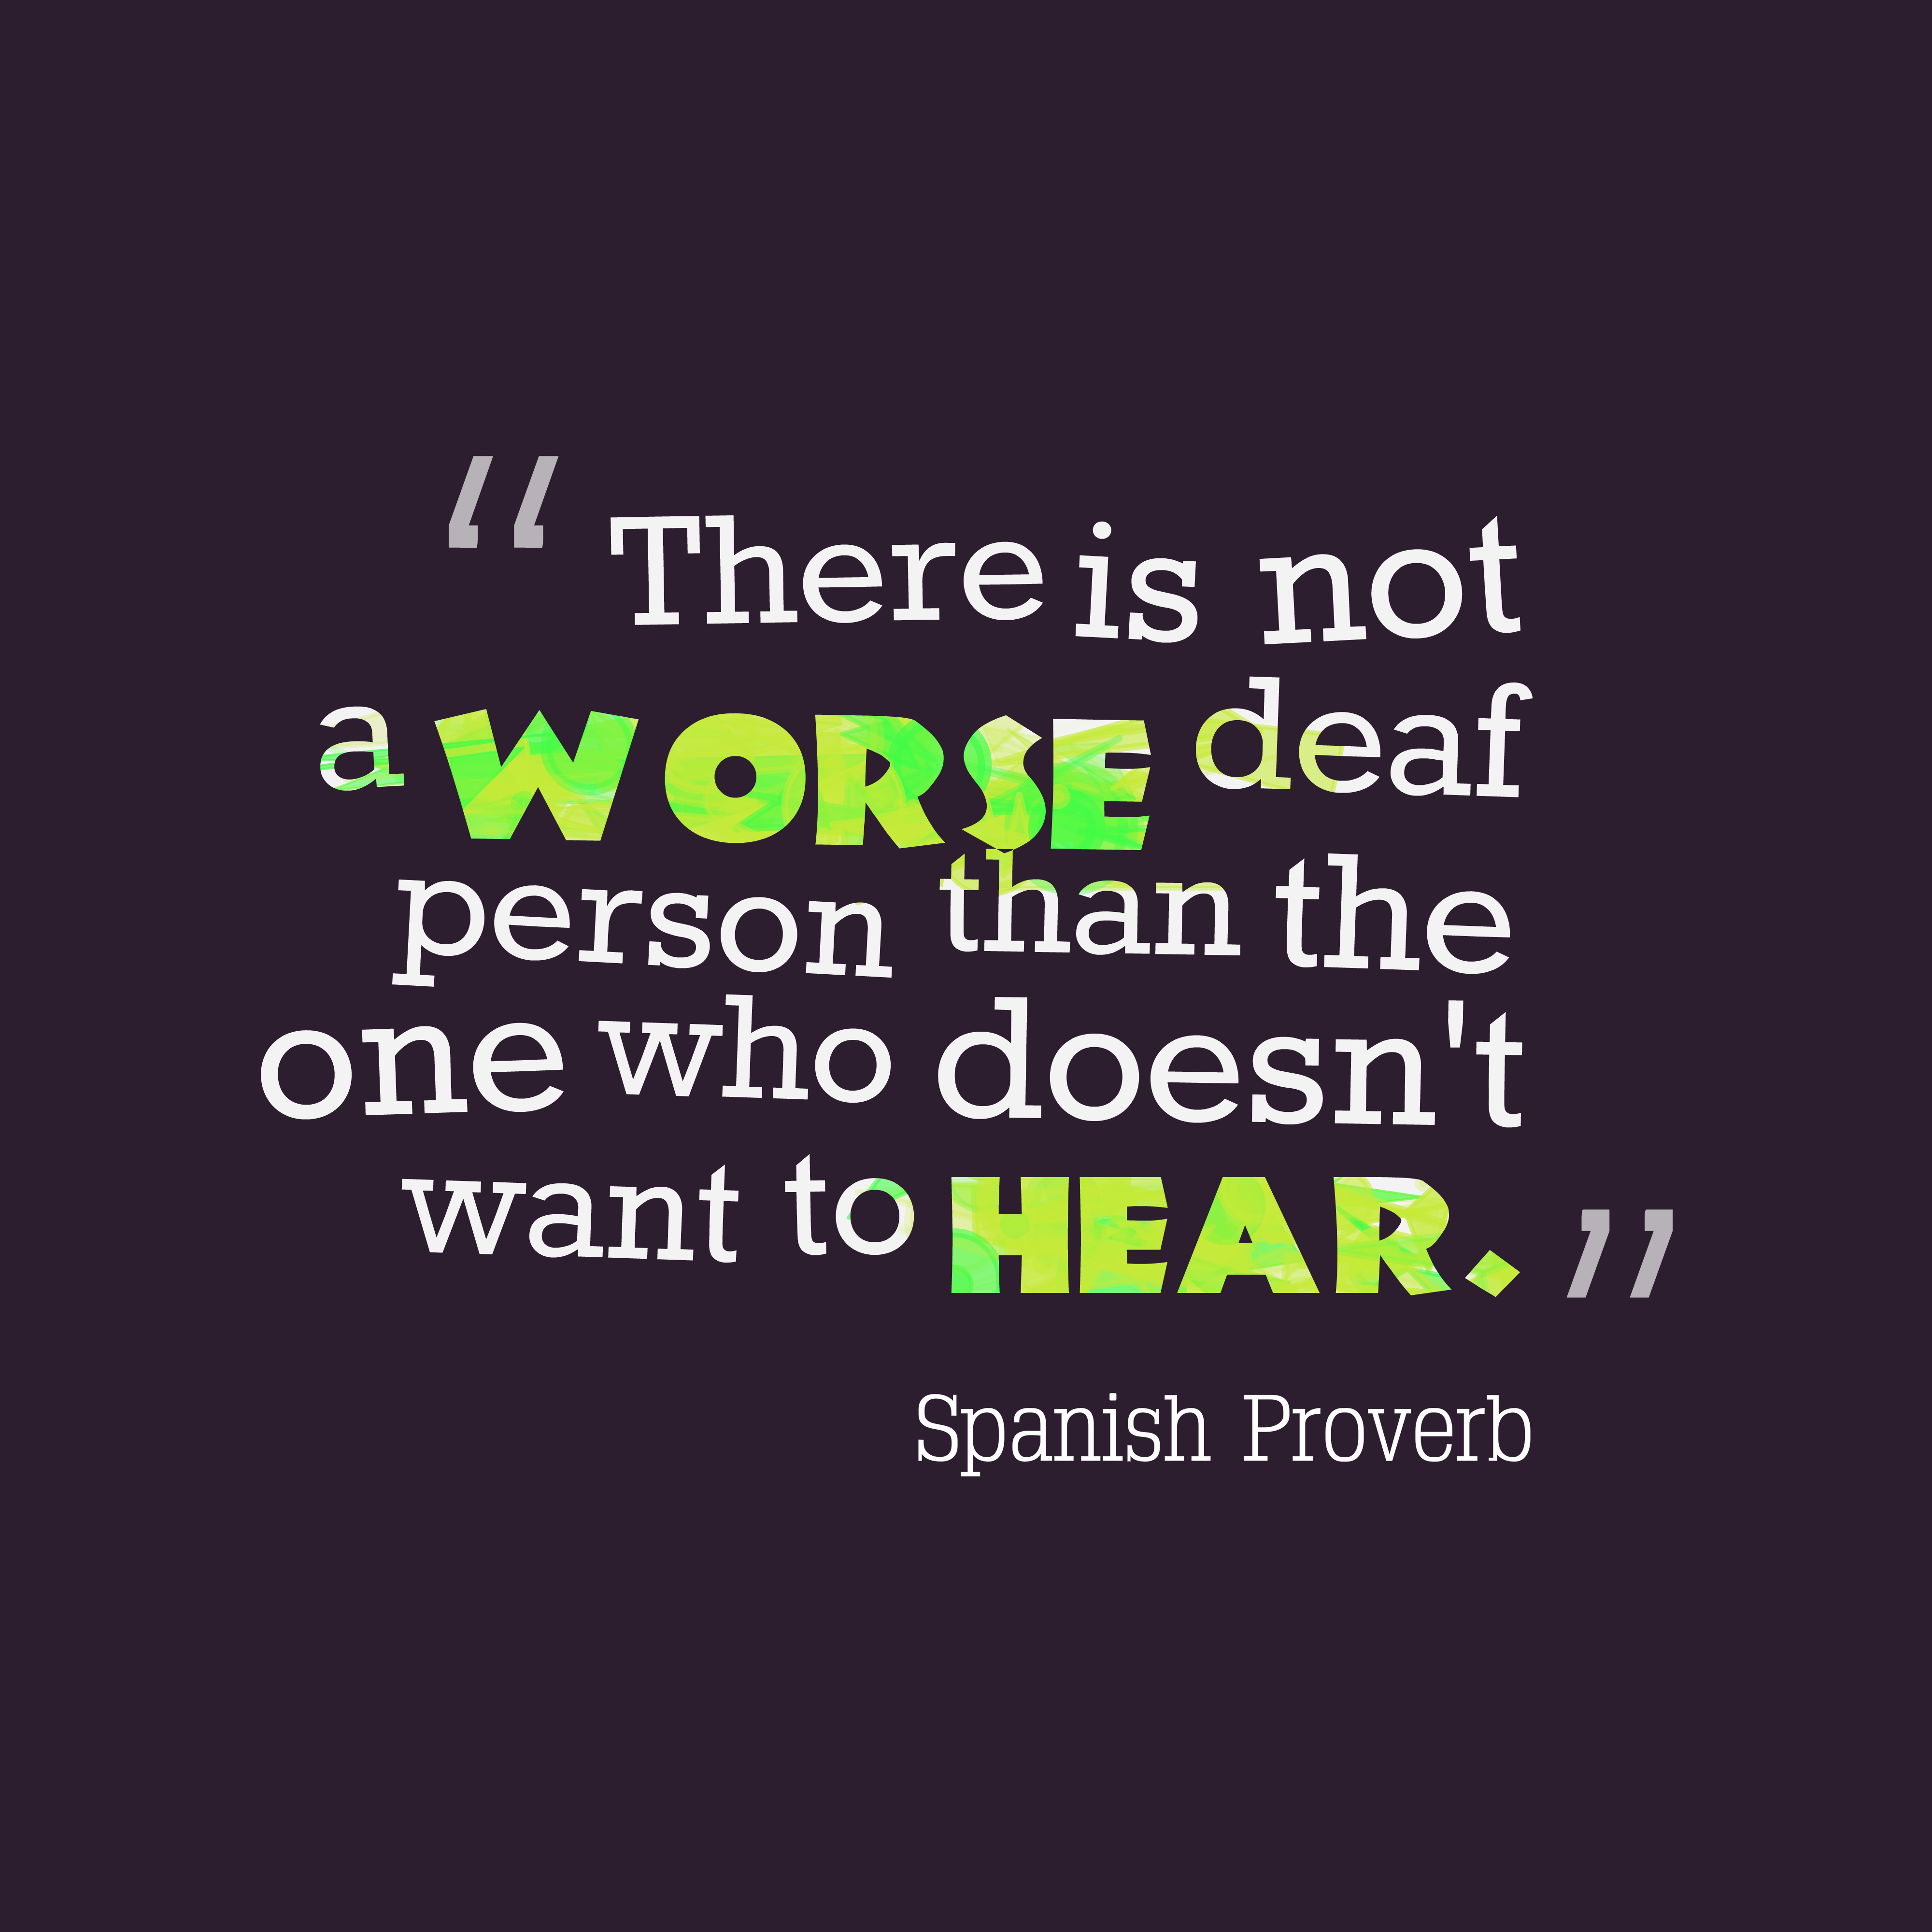 Quotes image of There is not a worse deaf person than the one who doesn't want to hear.